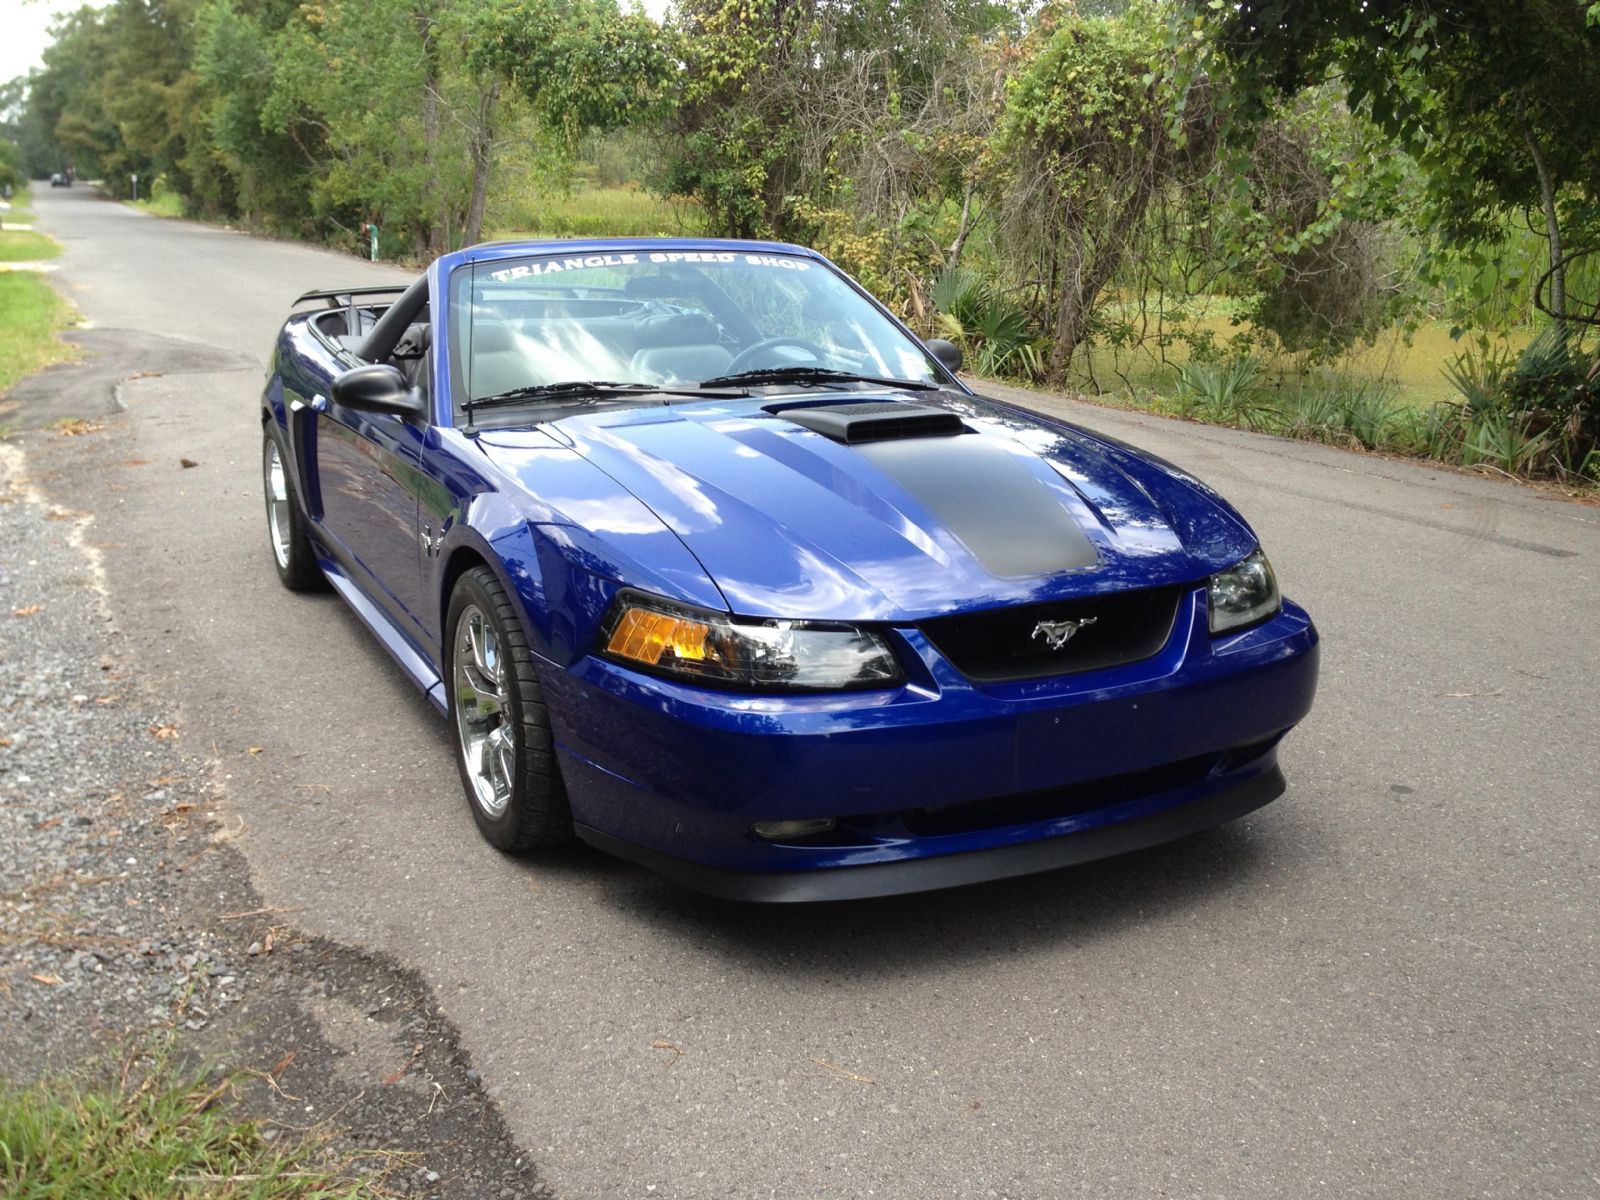 2002 Ford Mach 1 Clone [Mustang] GT Supercharged For Sale | Westlake Ohio